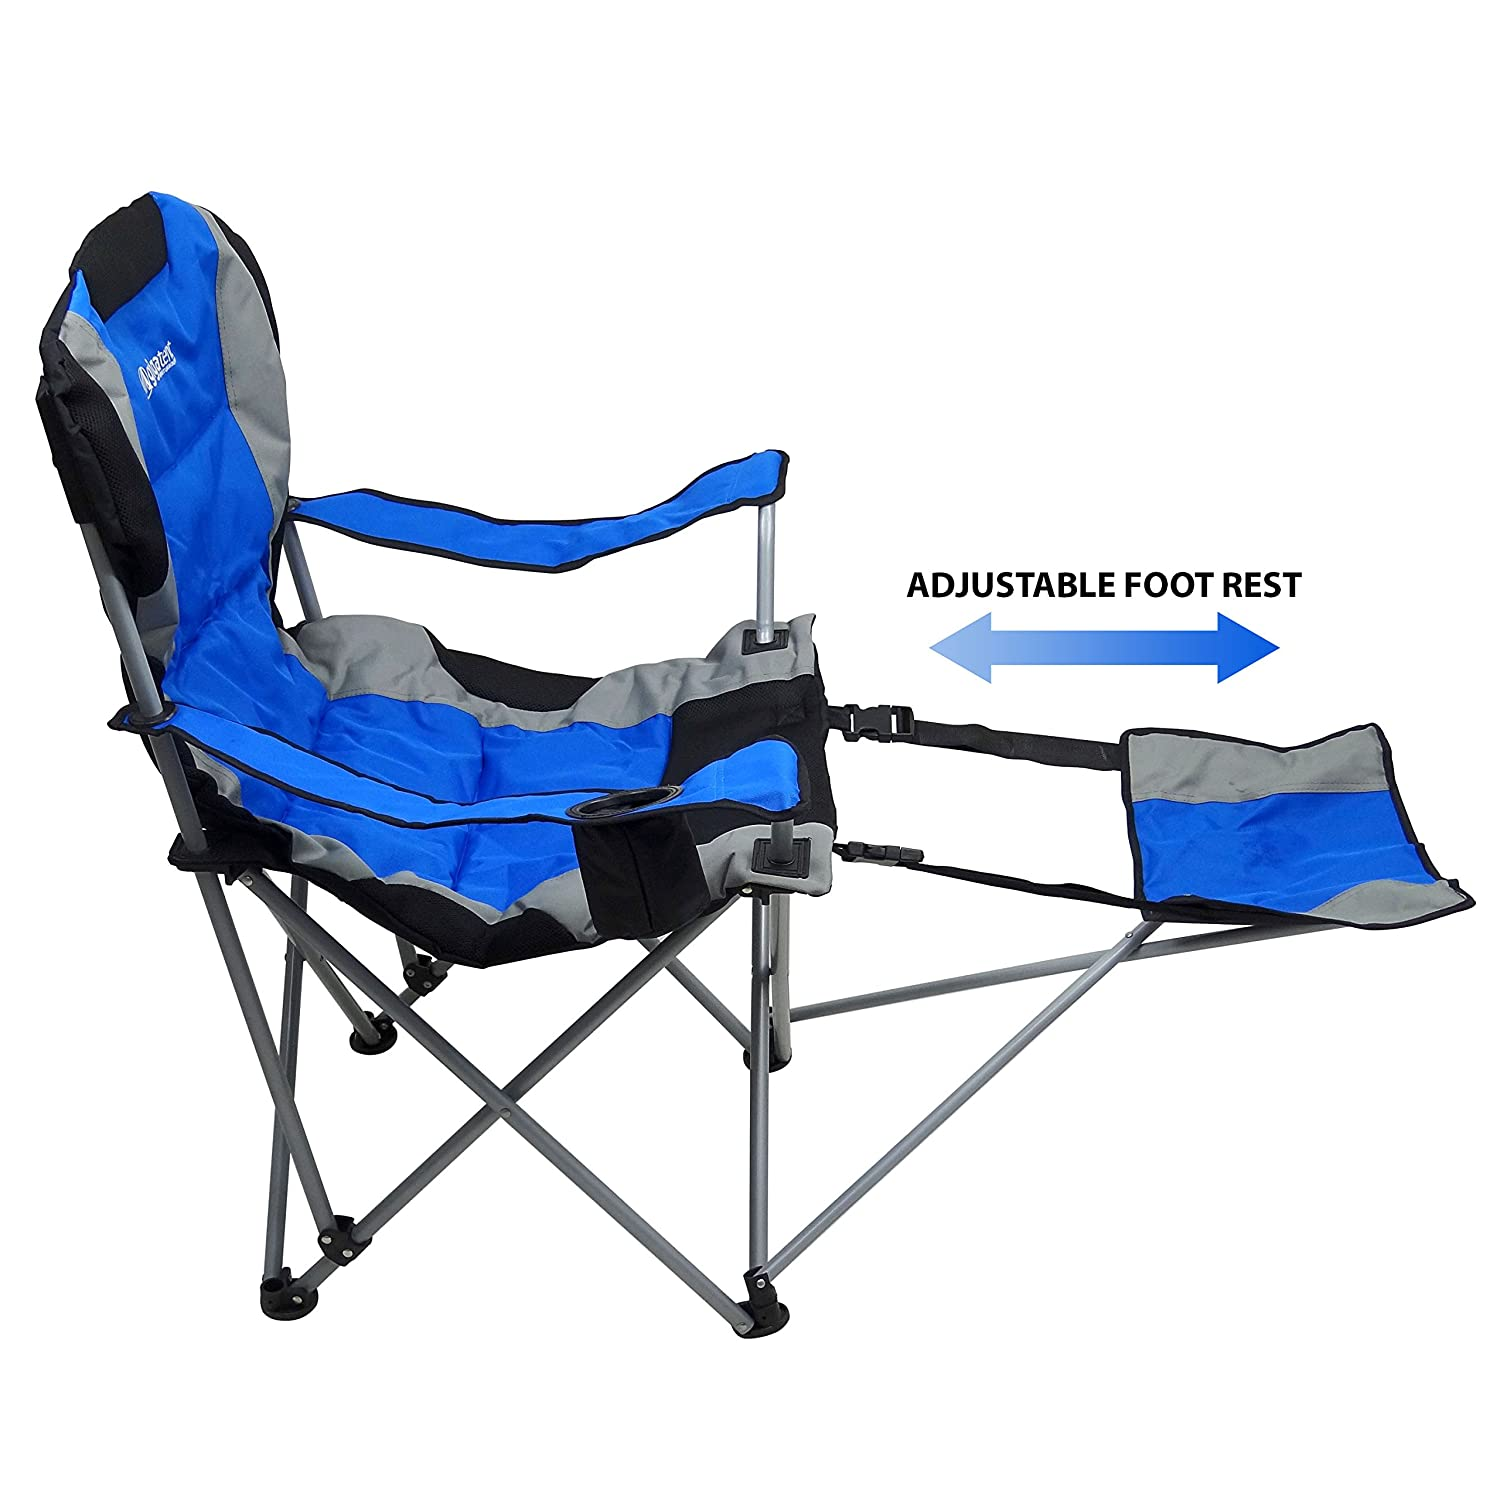 Amazon.com : Outdoor Quad Camping Chair   Lightweight, Portable Folding  Design   Adjustable Footrest, Cup Holder, Storage Carrying Bag   Durable  Material, ...